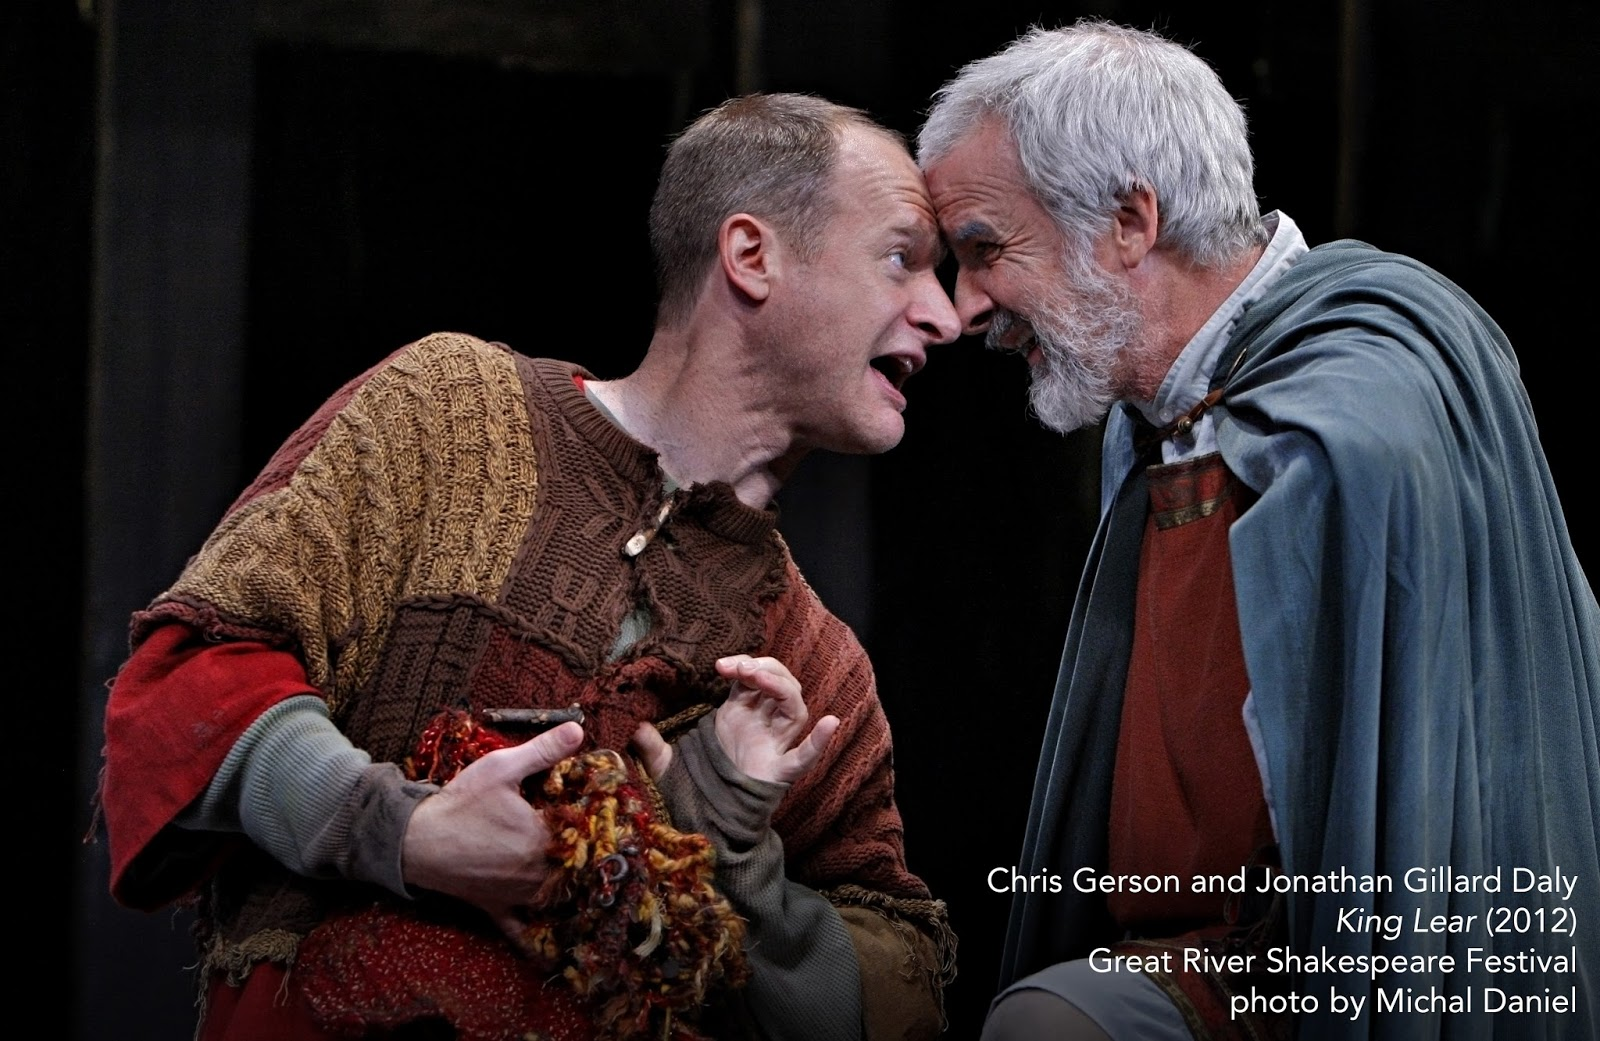 fool and lear Lear's fool, attached as he is to lear, becomes a spokesperson for the humanity lacking in lear's outrageously self-centered court feste, in some ways darker than the fool, both upholds the fairy-tale nature of illyria and criticizes it.